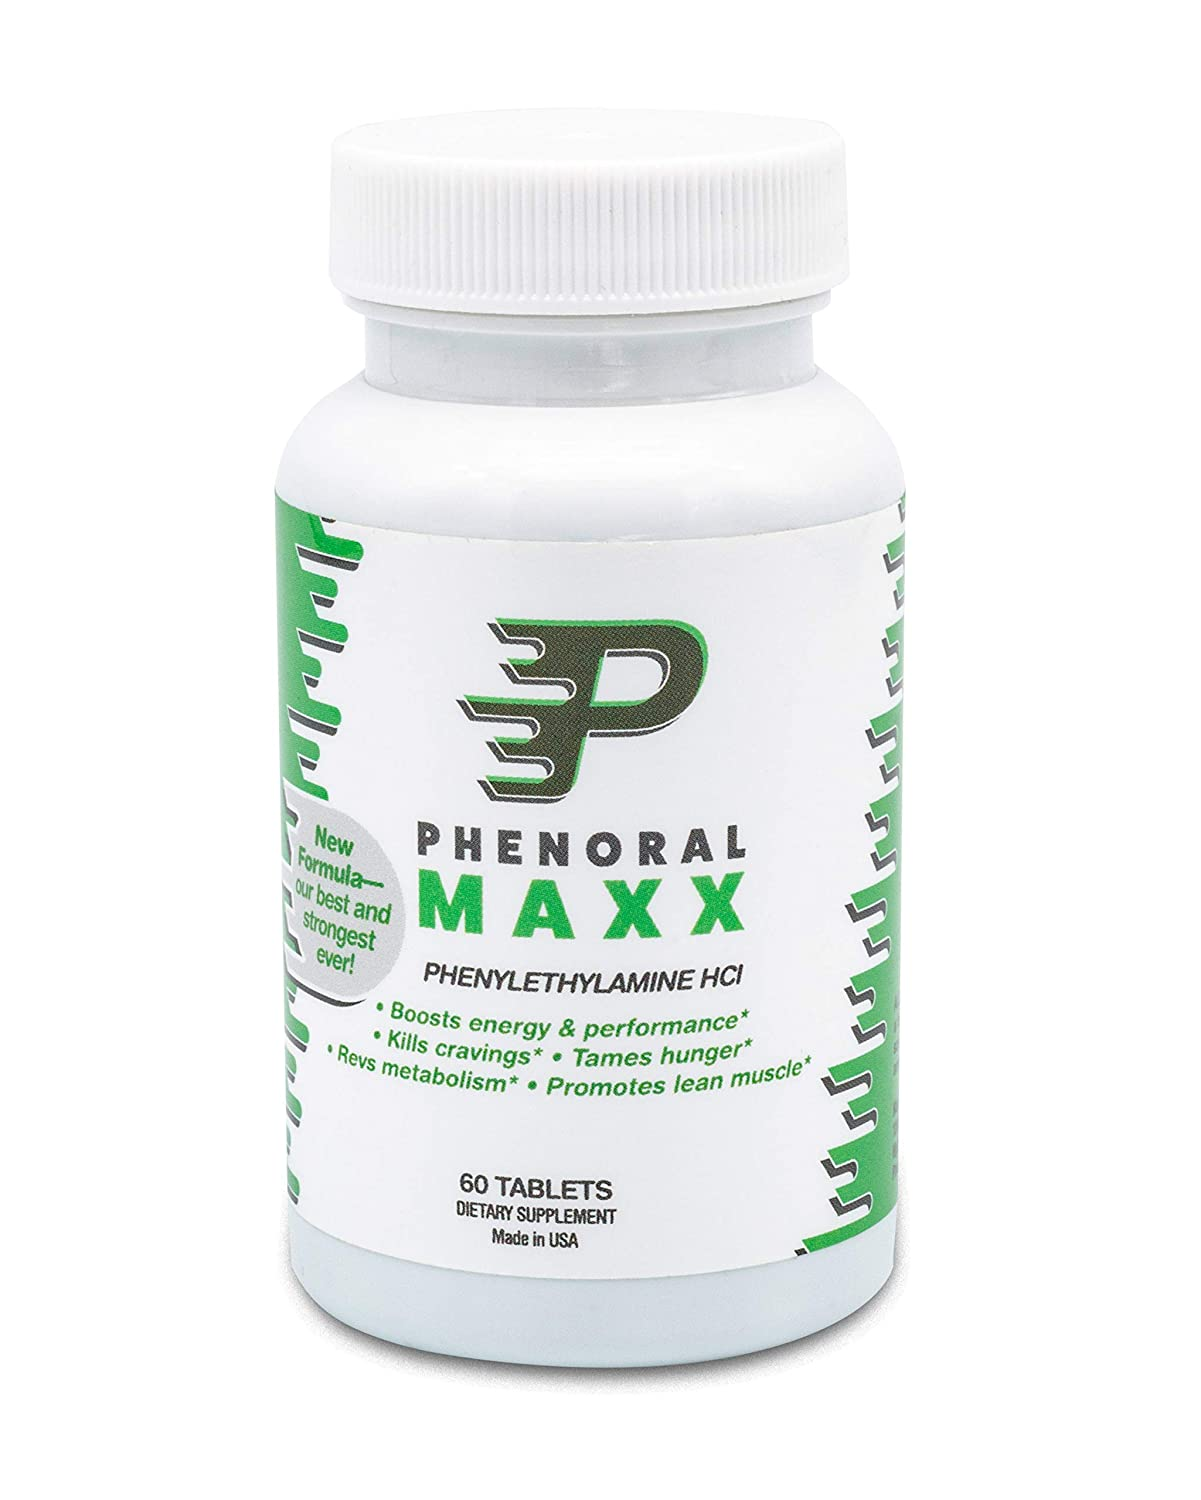 Phenoral Maxx Maximum Strength Weight Loss Diet Pill Phenylethylamine Appetite Suppressant And